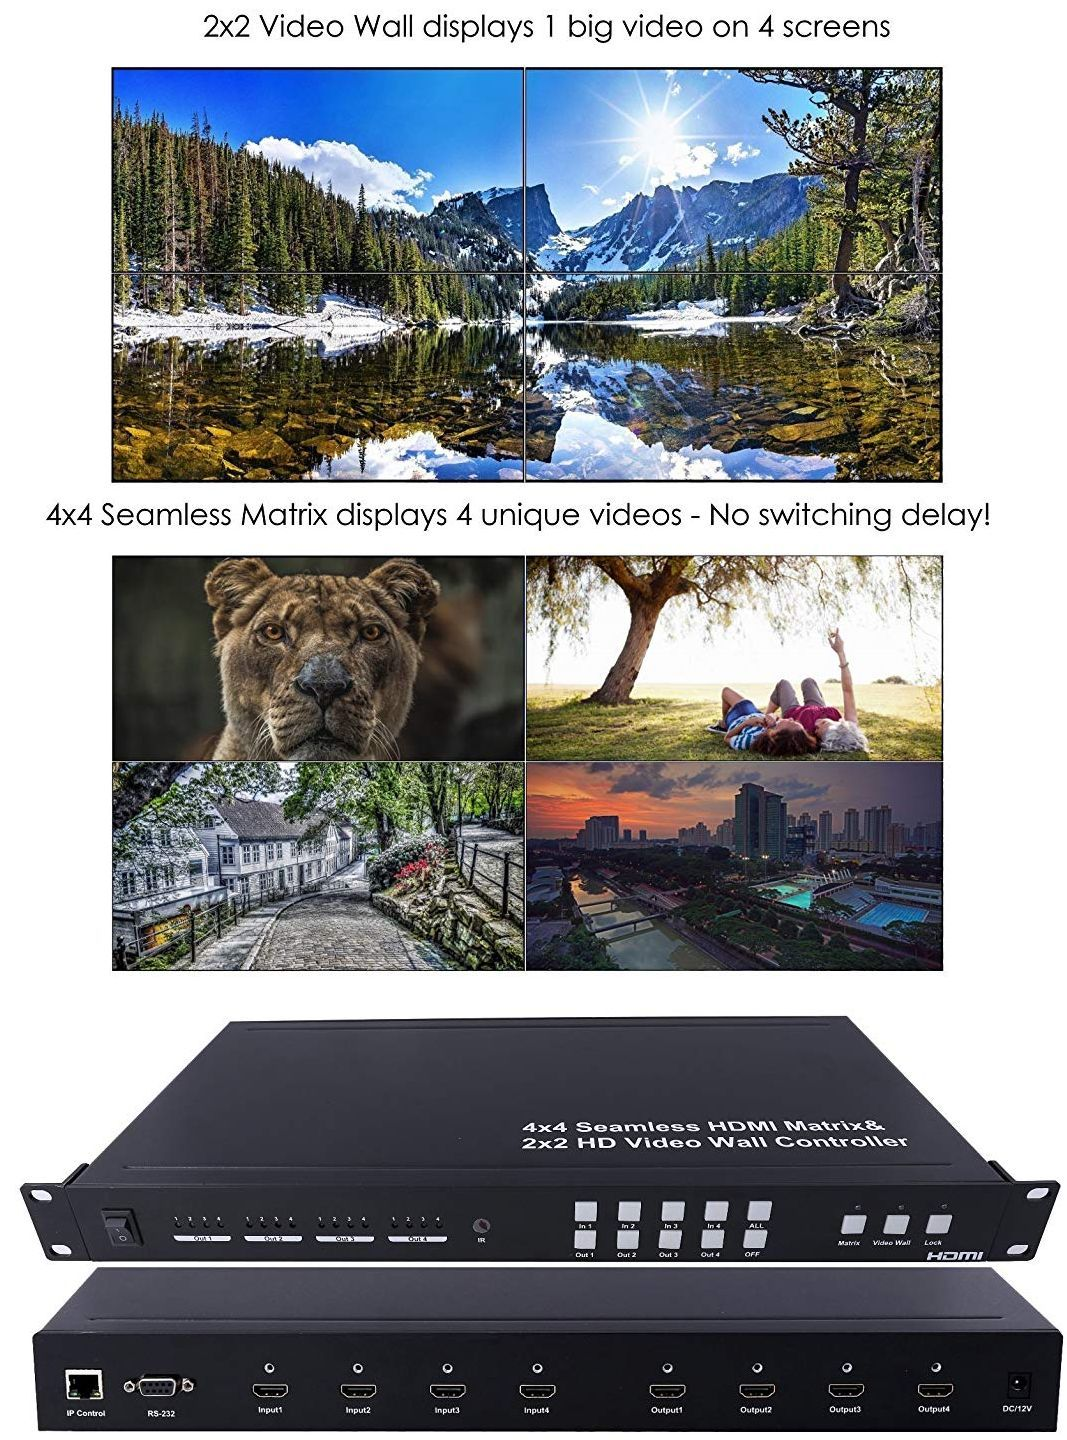 WolfPack 4x4 HDMI Matrix and 2x2 Video Wall